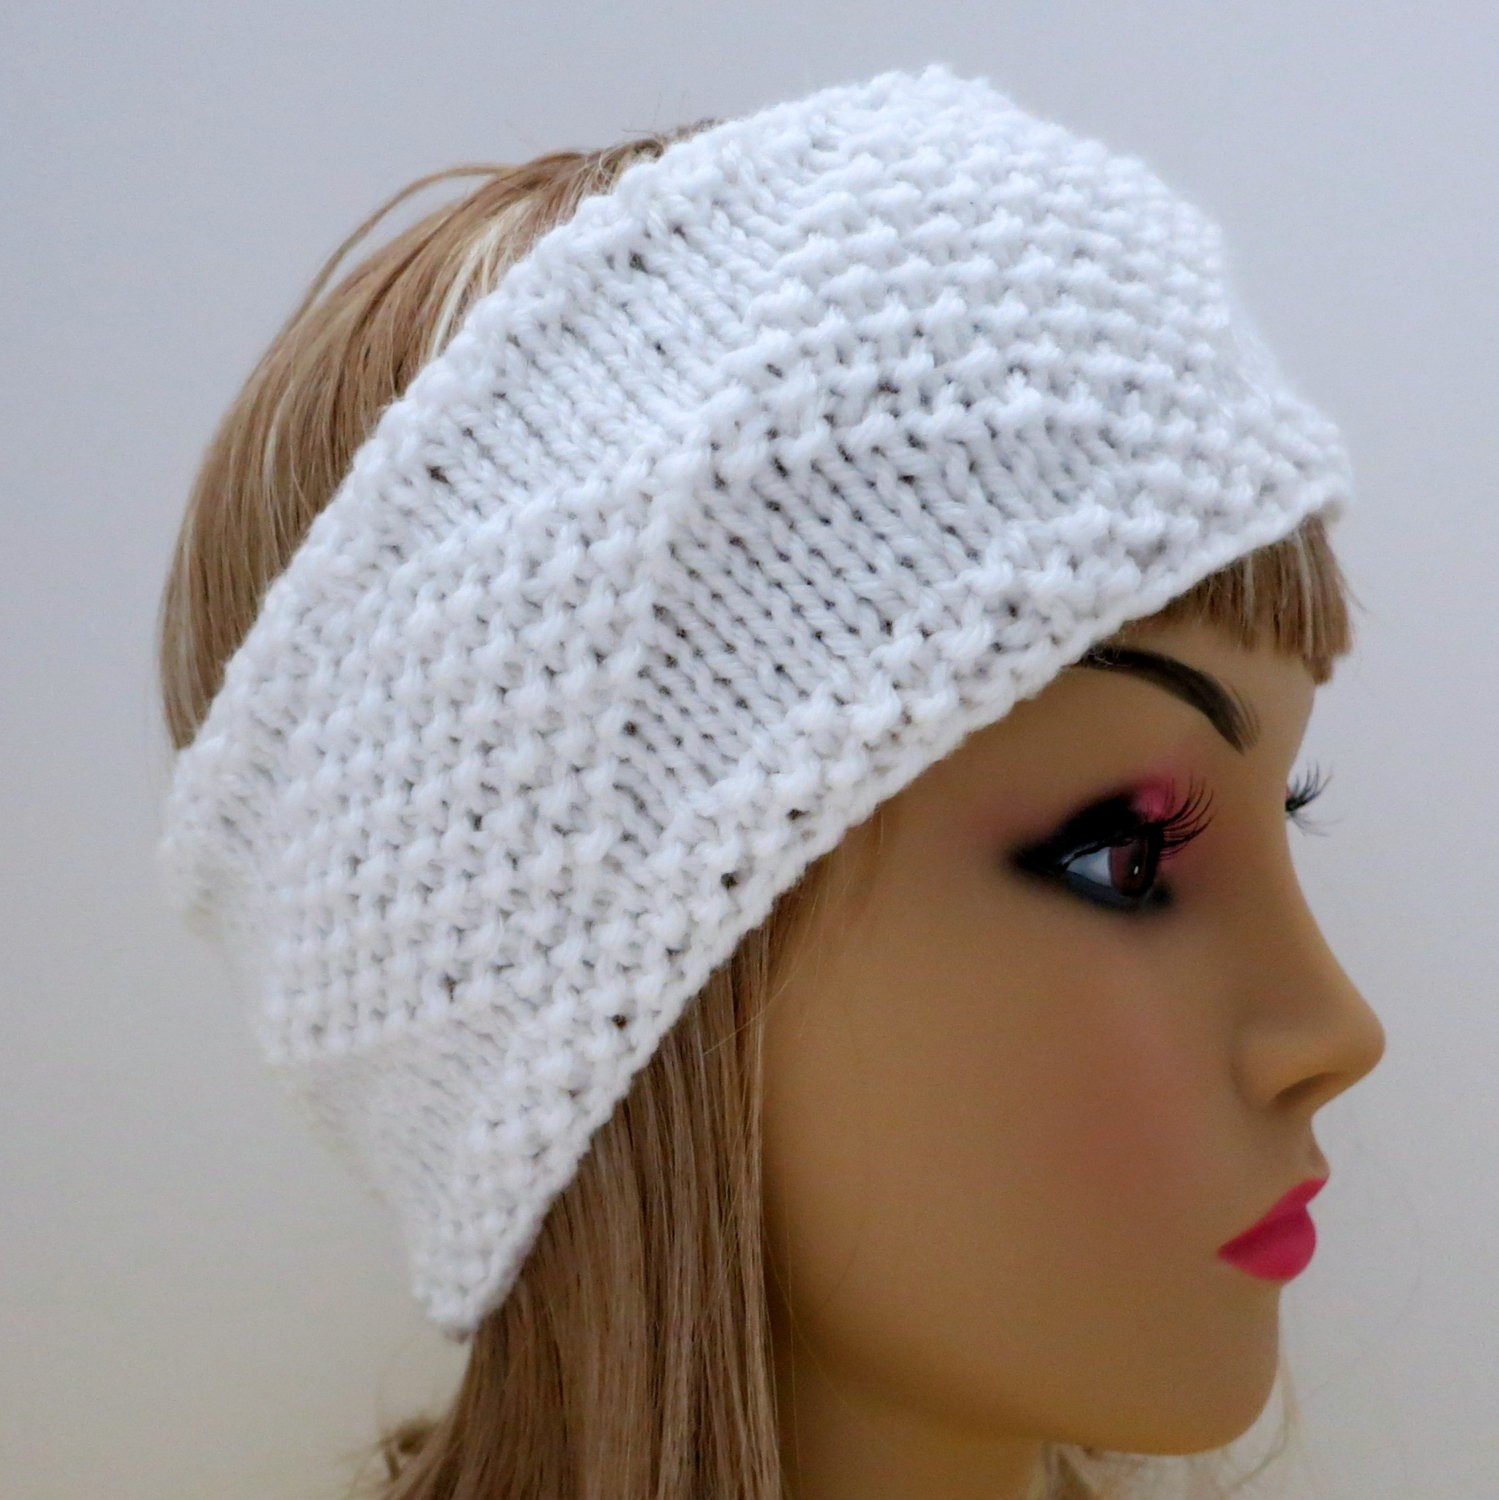 Knit Pattern For Headband : Knit Ear Warmer Pattern A Knitting Blog